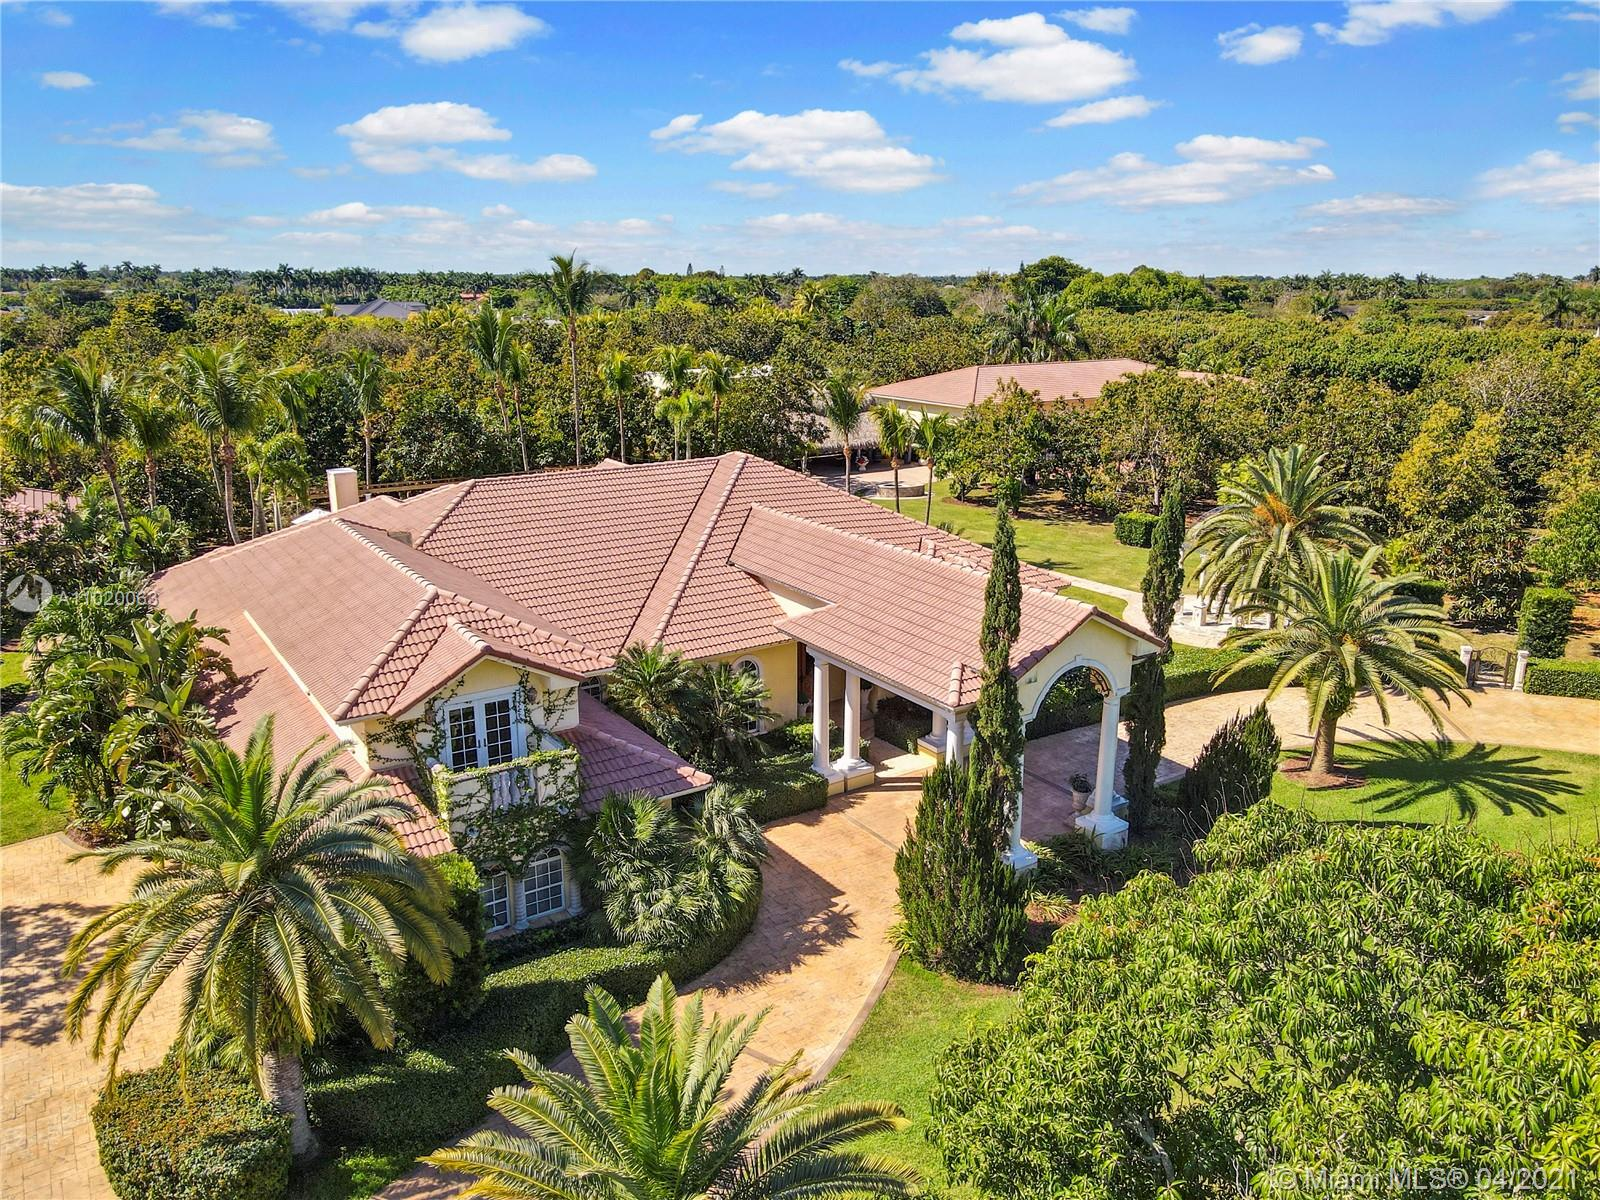 10 ACRE SPRAWLING ESTATE, MAIN, GUEST, 3 CAR ATTACHED,POOL, 12+ DETACHED GARAGE W WORKSHOP, WALKWAYS THRUOUT, INCOME GROVE PLUS.....